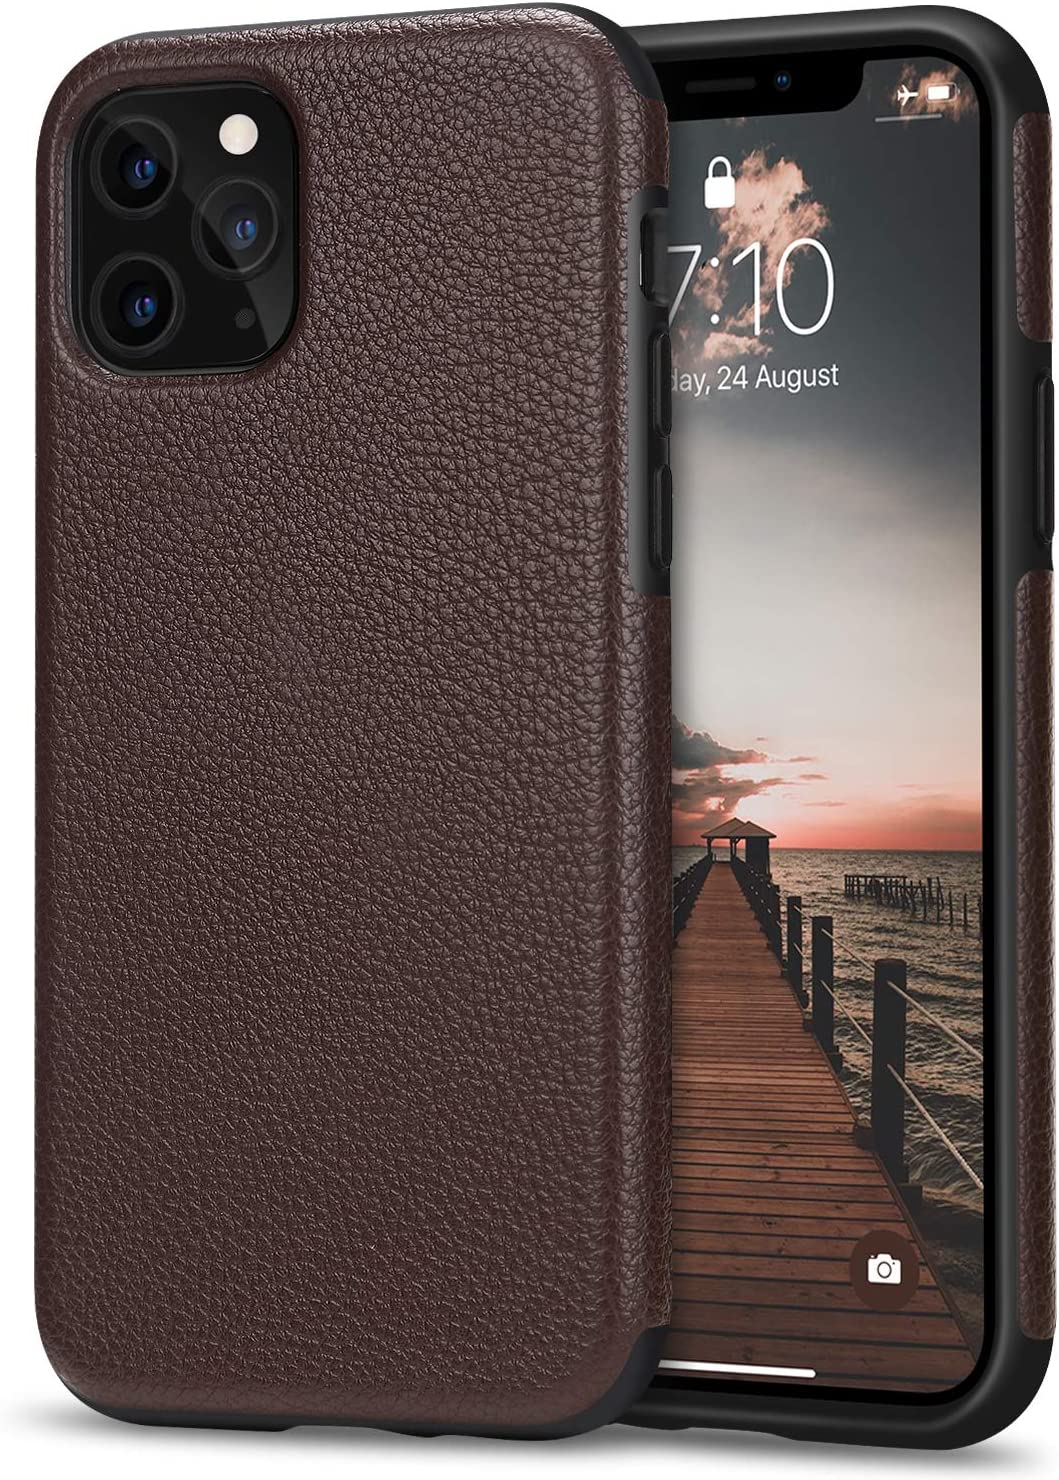 Tasikar Compatible with iPhone 11 Pro Max Case Protective Leather Cover TPU Bumper Design Hybrid Case (Brown)